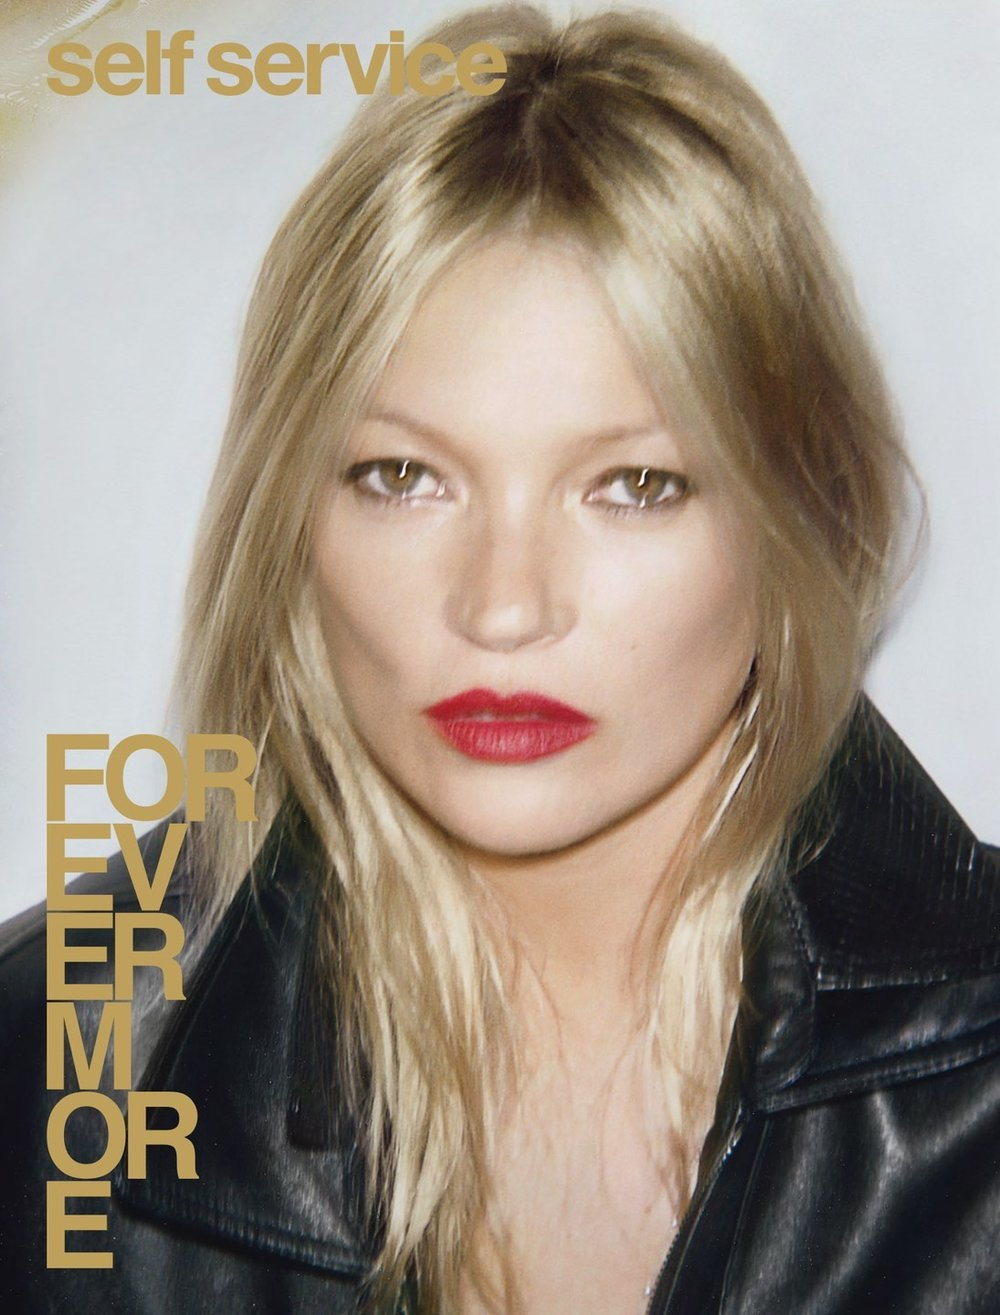 Kate Moss by Ezra Petronio for Self Service FW 2018 (1).jpg